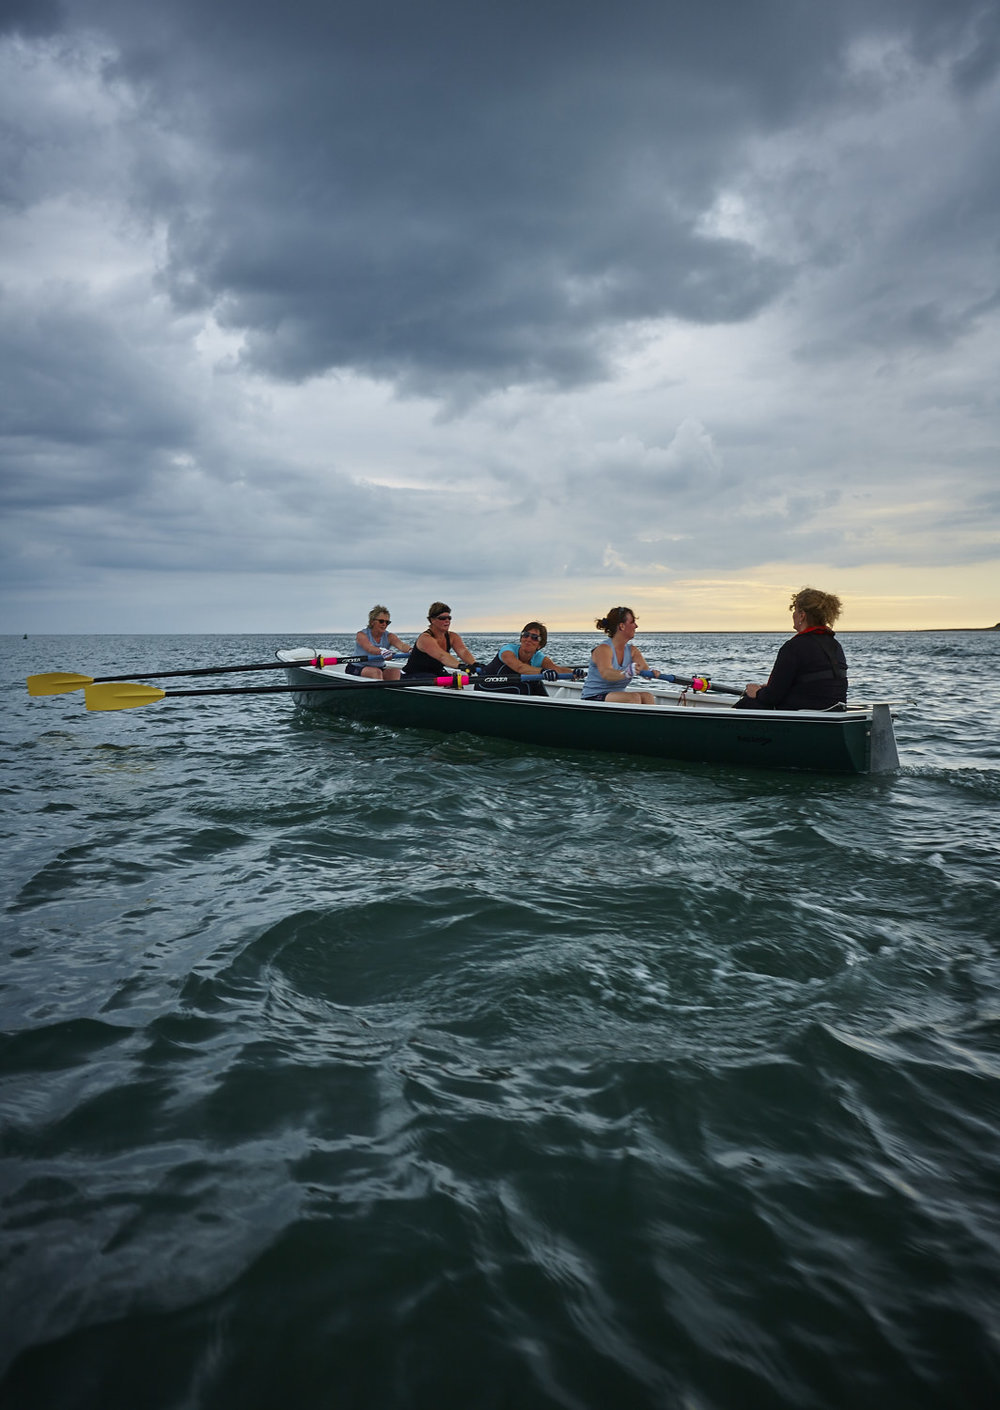 Aberdyfi Rowing Club